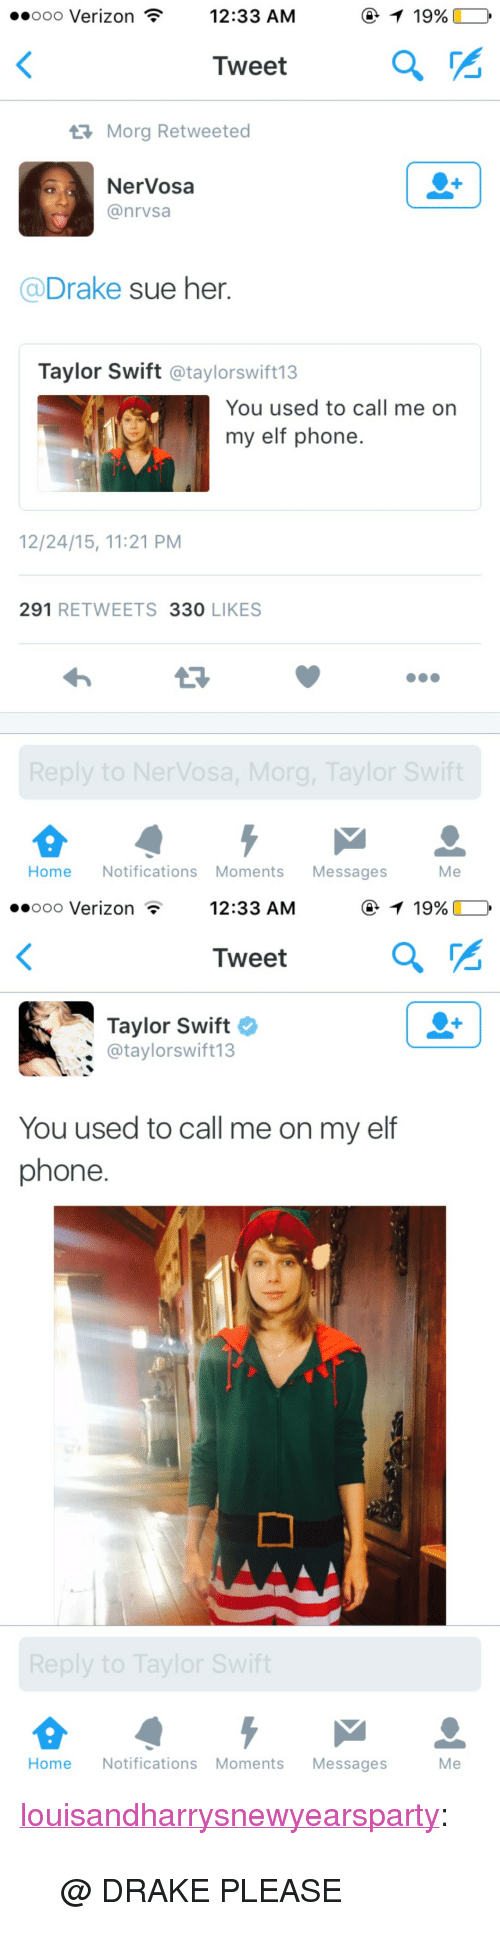 "You Used To Call Me: ooooo Verizon  12:33 AM  Tweet  Morg Retweeted  NerVosa  @nrvsa  @Drake sue her  Taylor Swift @taylorswift13  You used to call me orn  my elf phone  12/24/15, 11:21 PM  291 RETWEETS 330 LIKES  Home Notifications Moments Messages  Me   ..ooo Verizon  12:33 AM  Tweet  Taylor Swift  @taylorswift13  You used to call me on my elf  phone.  eply to Tayior  Home Notifications Moments Messages Me <p><a class=""tumblr_blog"" href=""http://louisandharrysnewyearsparty.tumblr.com/post/135891798770"" target=""_blank"">louisandharrysnewyearsparty</a>:</p> <blockquote> <p>@ DRAKE PLEASE</p> </blockquote>"